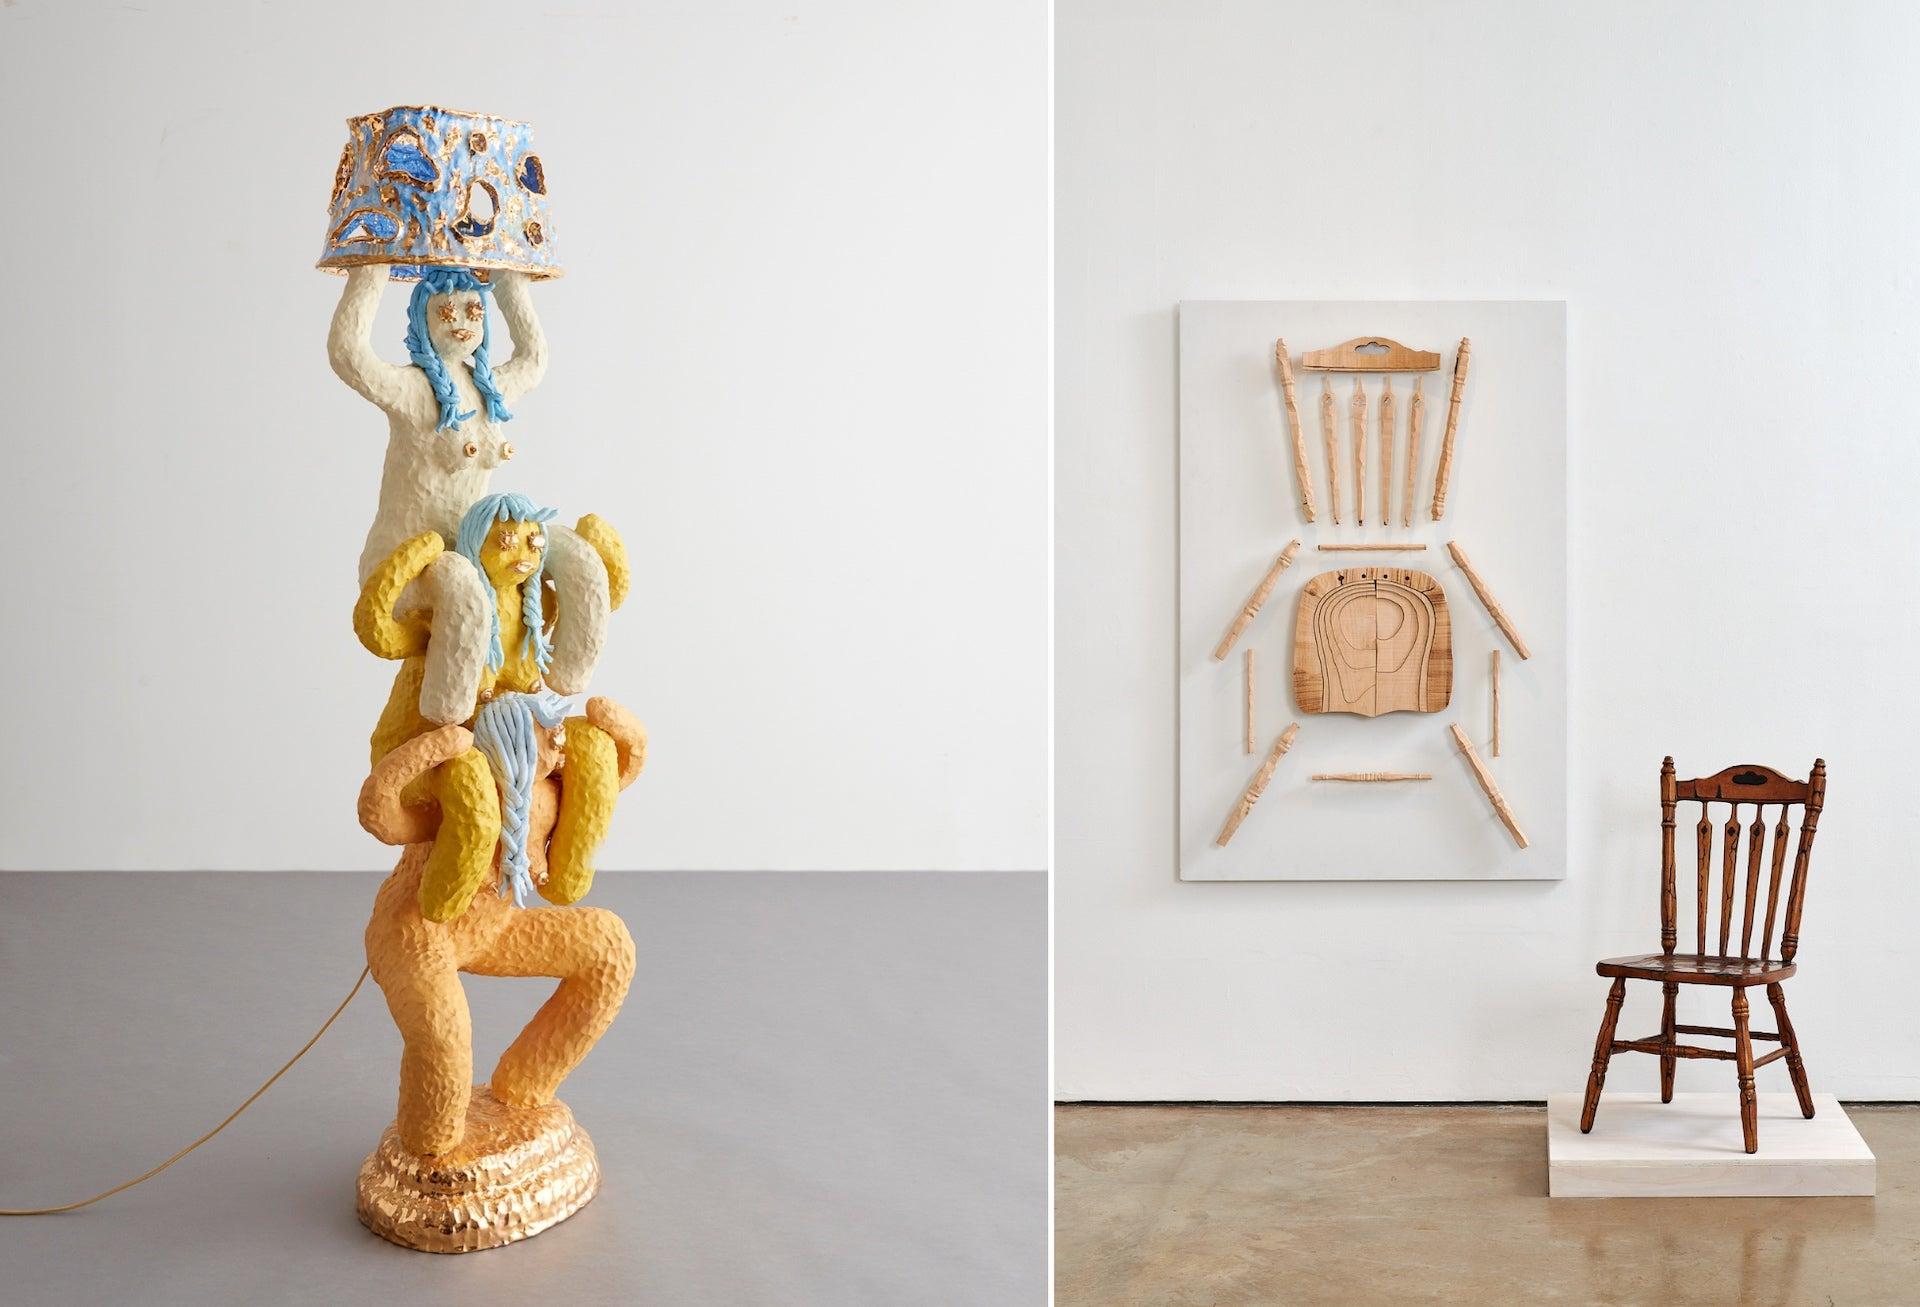 Triple Squat by Katie Stout, 2018. Photo courtesy of R & Company   Skinned Chair by Joyce Lin, 2019. Photo © Peter Molick; Courtesy of the Artist